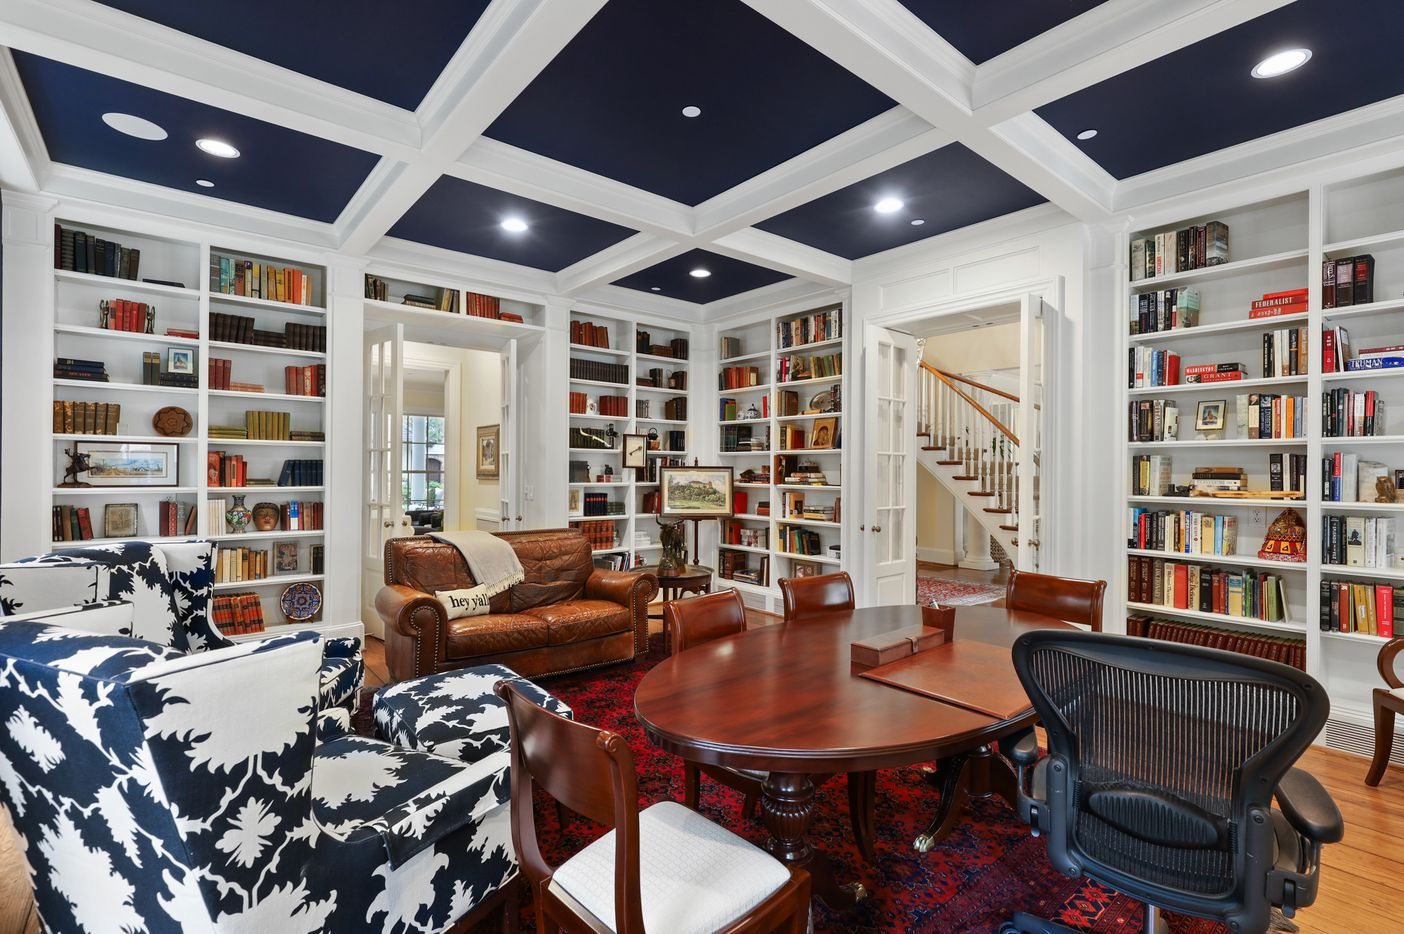 Take a look inside the home at 3825 Potomac Ave. in Highland Park.